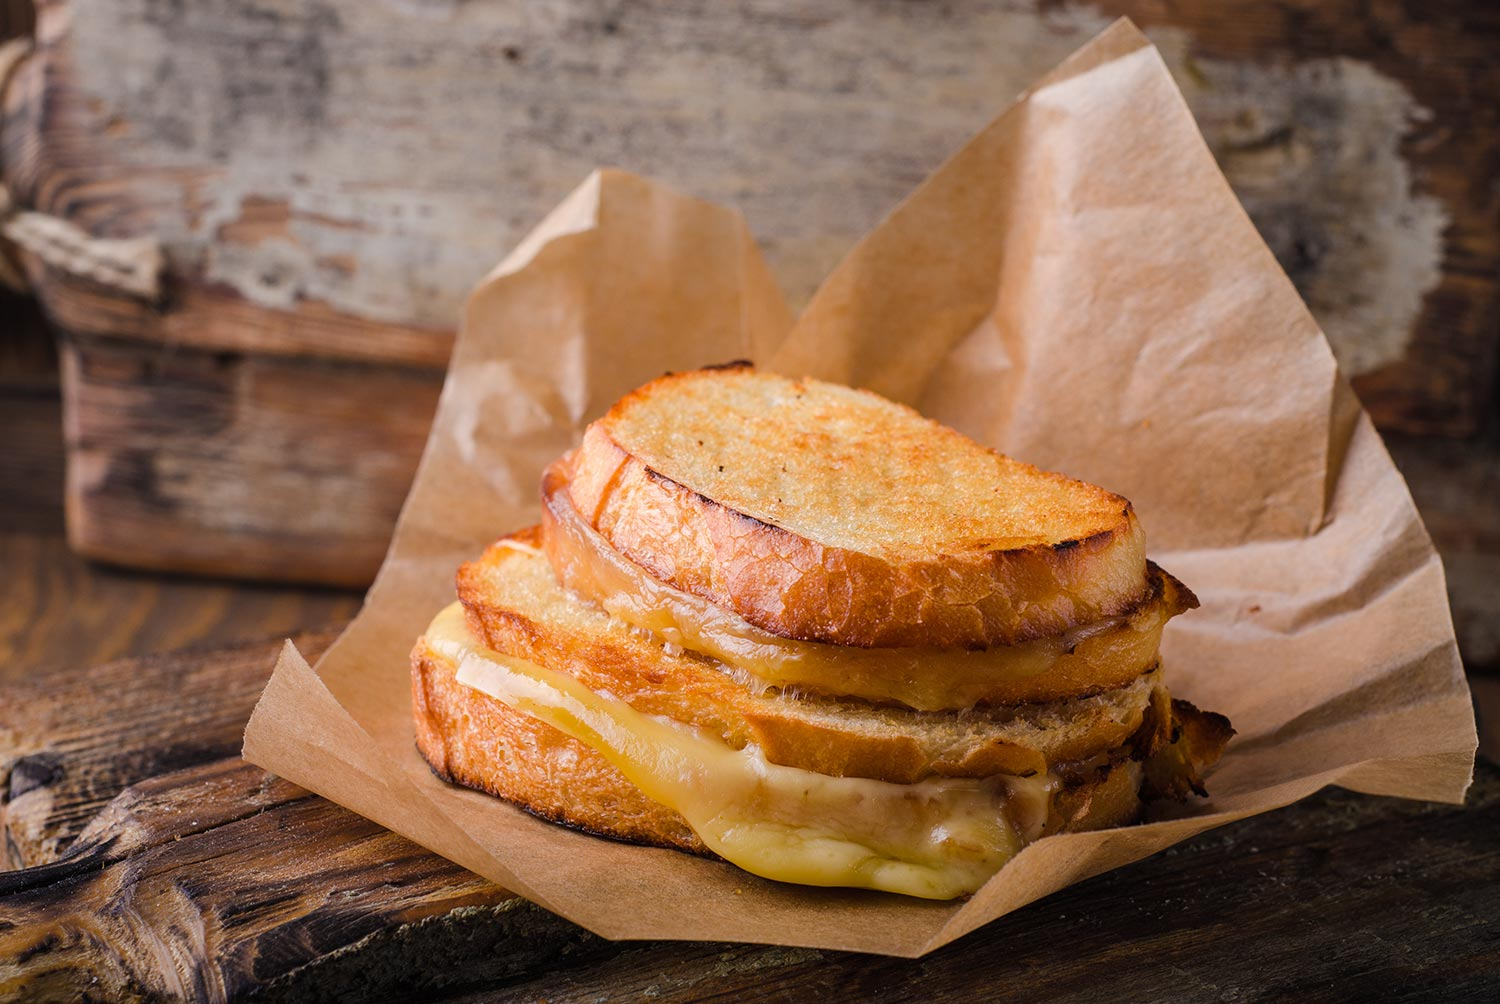 Sourdough Grilled Cheese